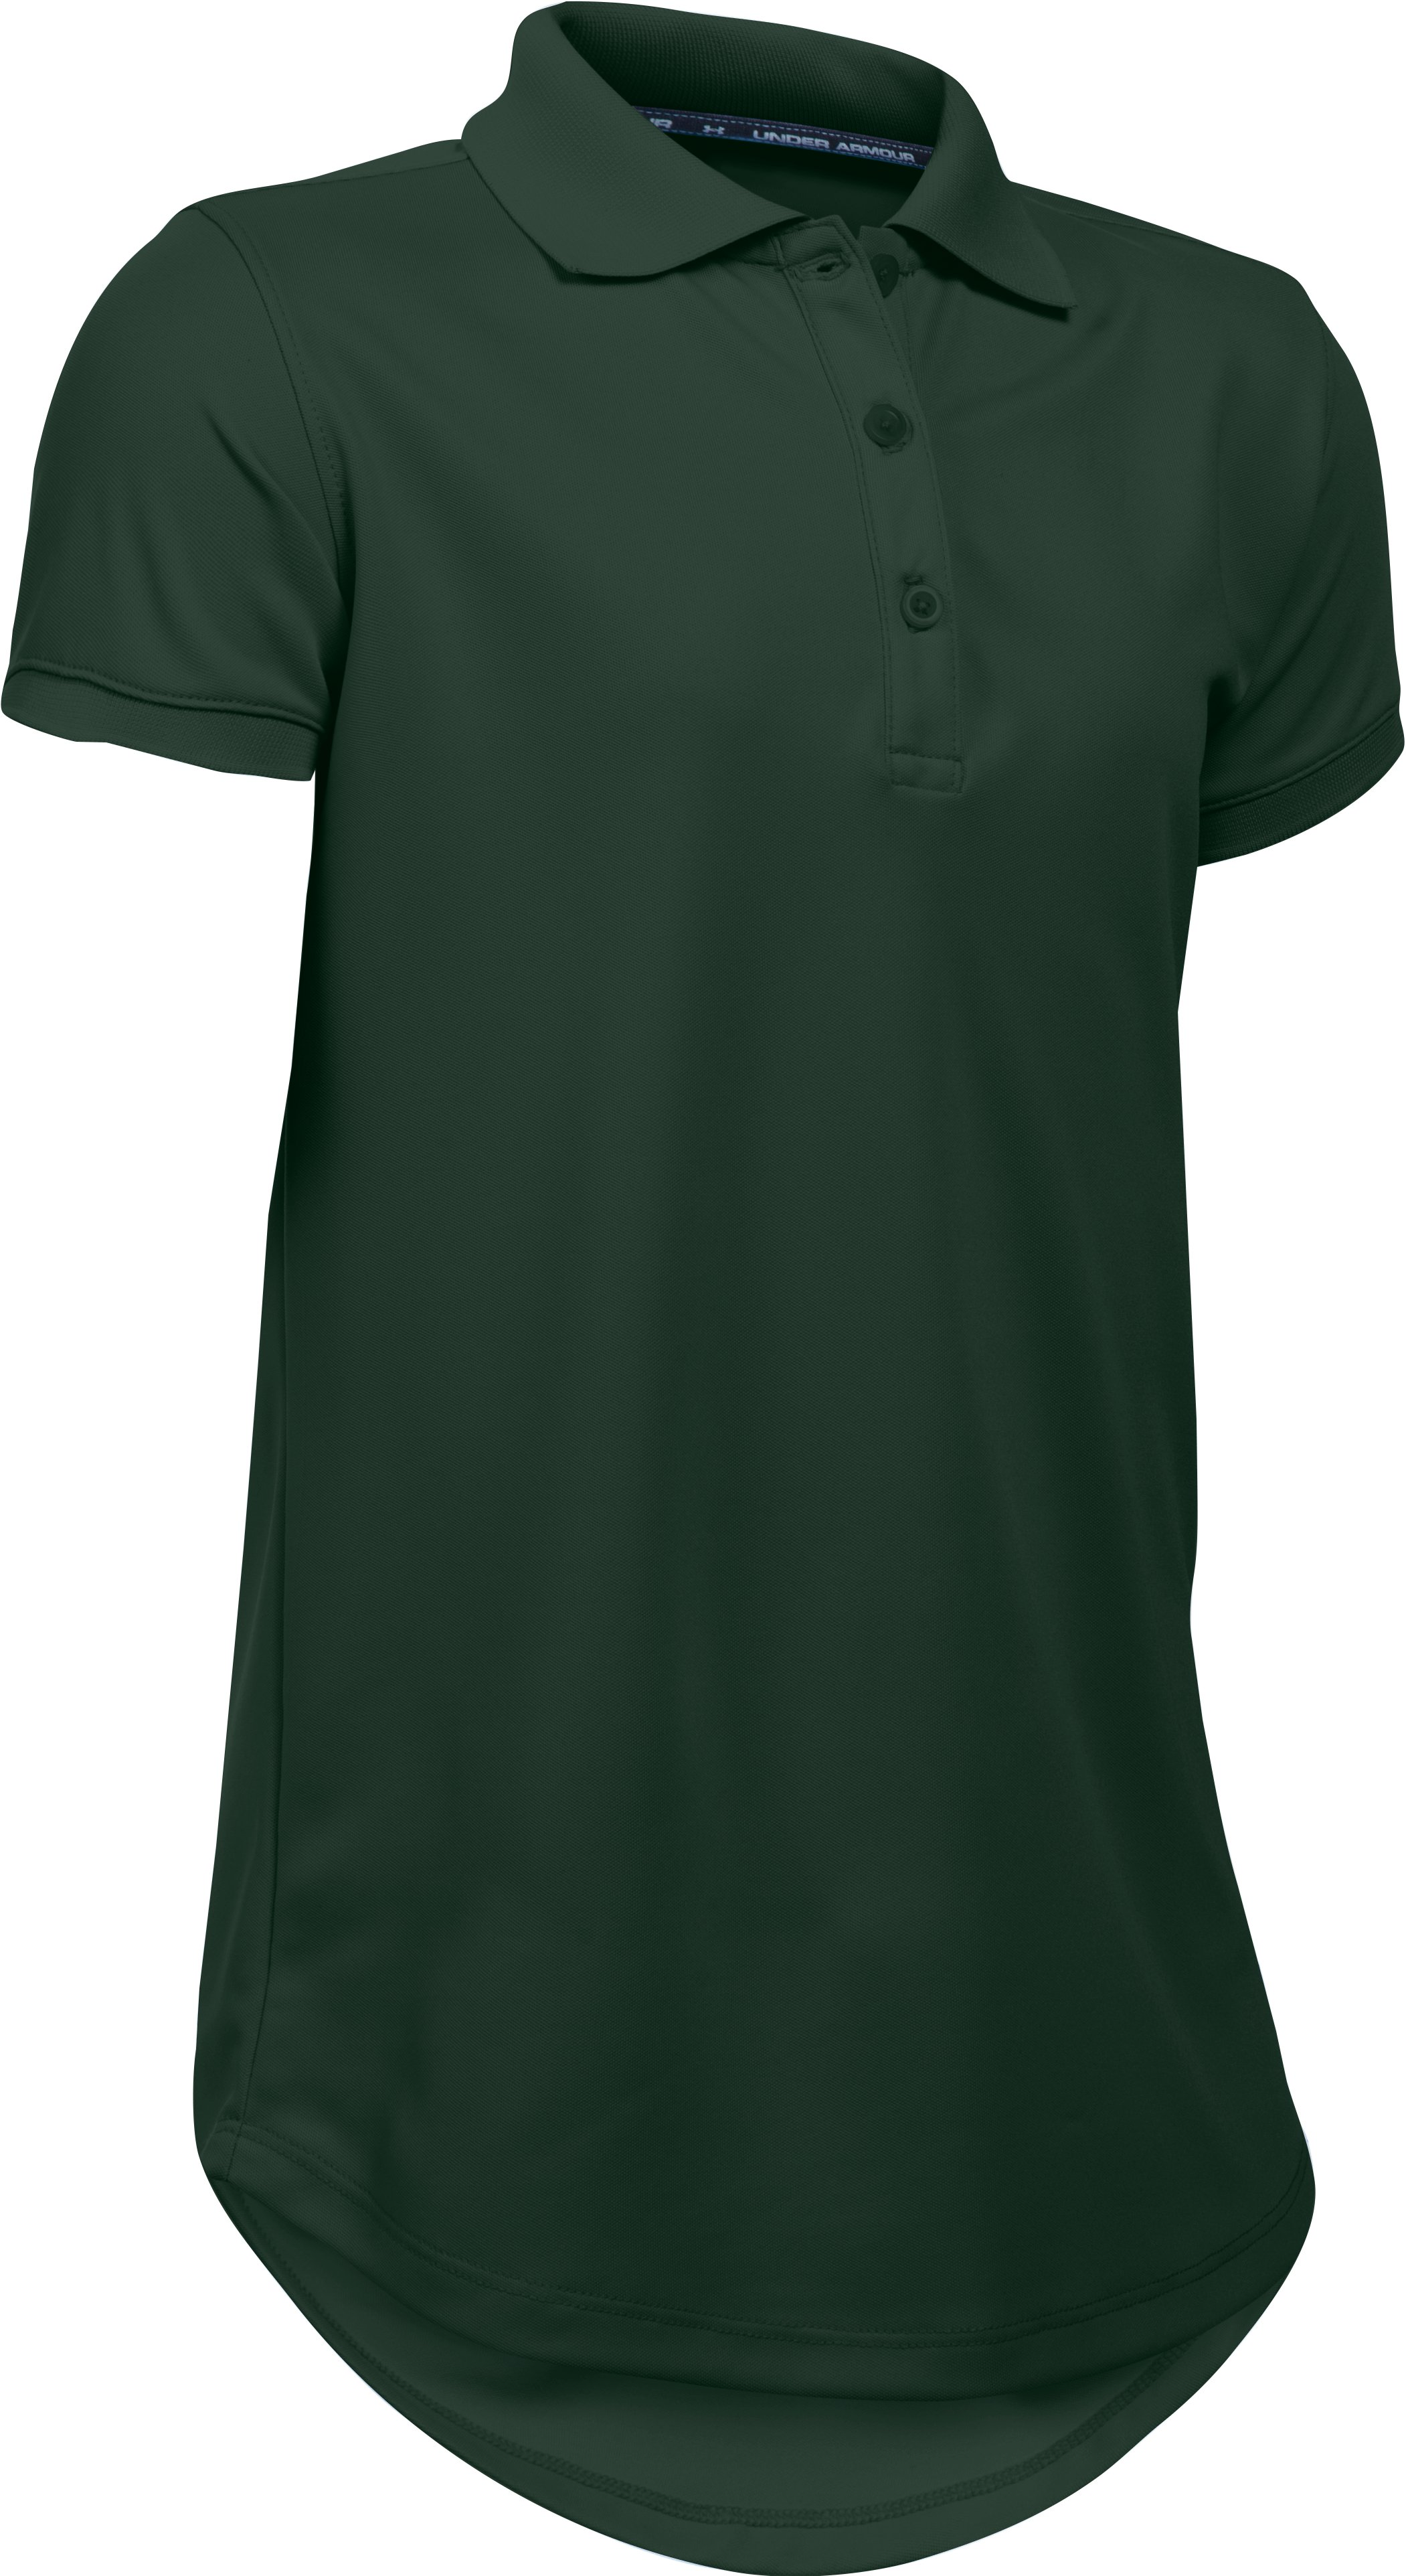 forest green polos Girls UA Uniform Short Sleeve Polo We love the UA Uniform shirts....My Daughter fall in love this polos shirts n her mom also fall in love with them because is real easy to wash n don't wrinkle easy iron...Highly recommend these shirts!